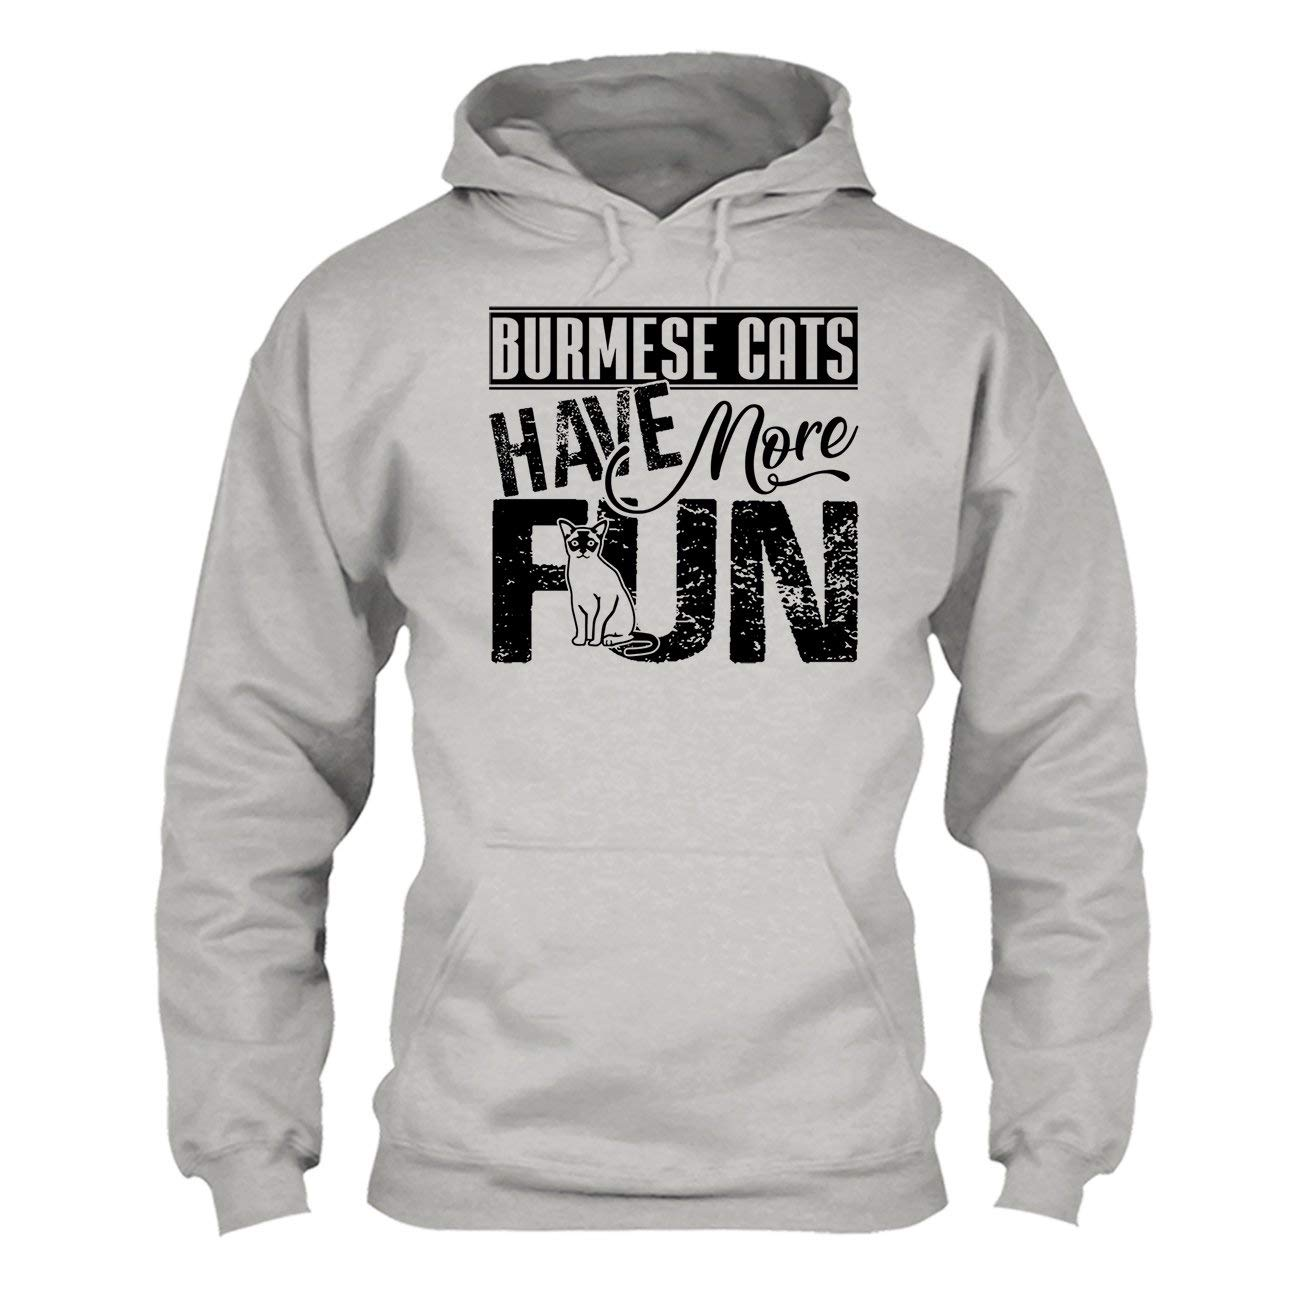 Cool Burmese Cats Have More Fun Tshirt Sweatshirt Design